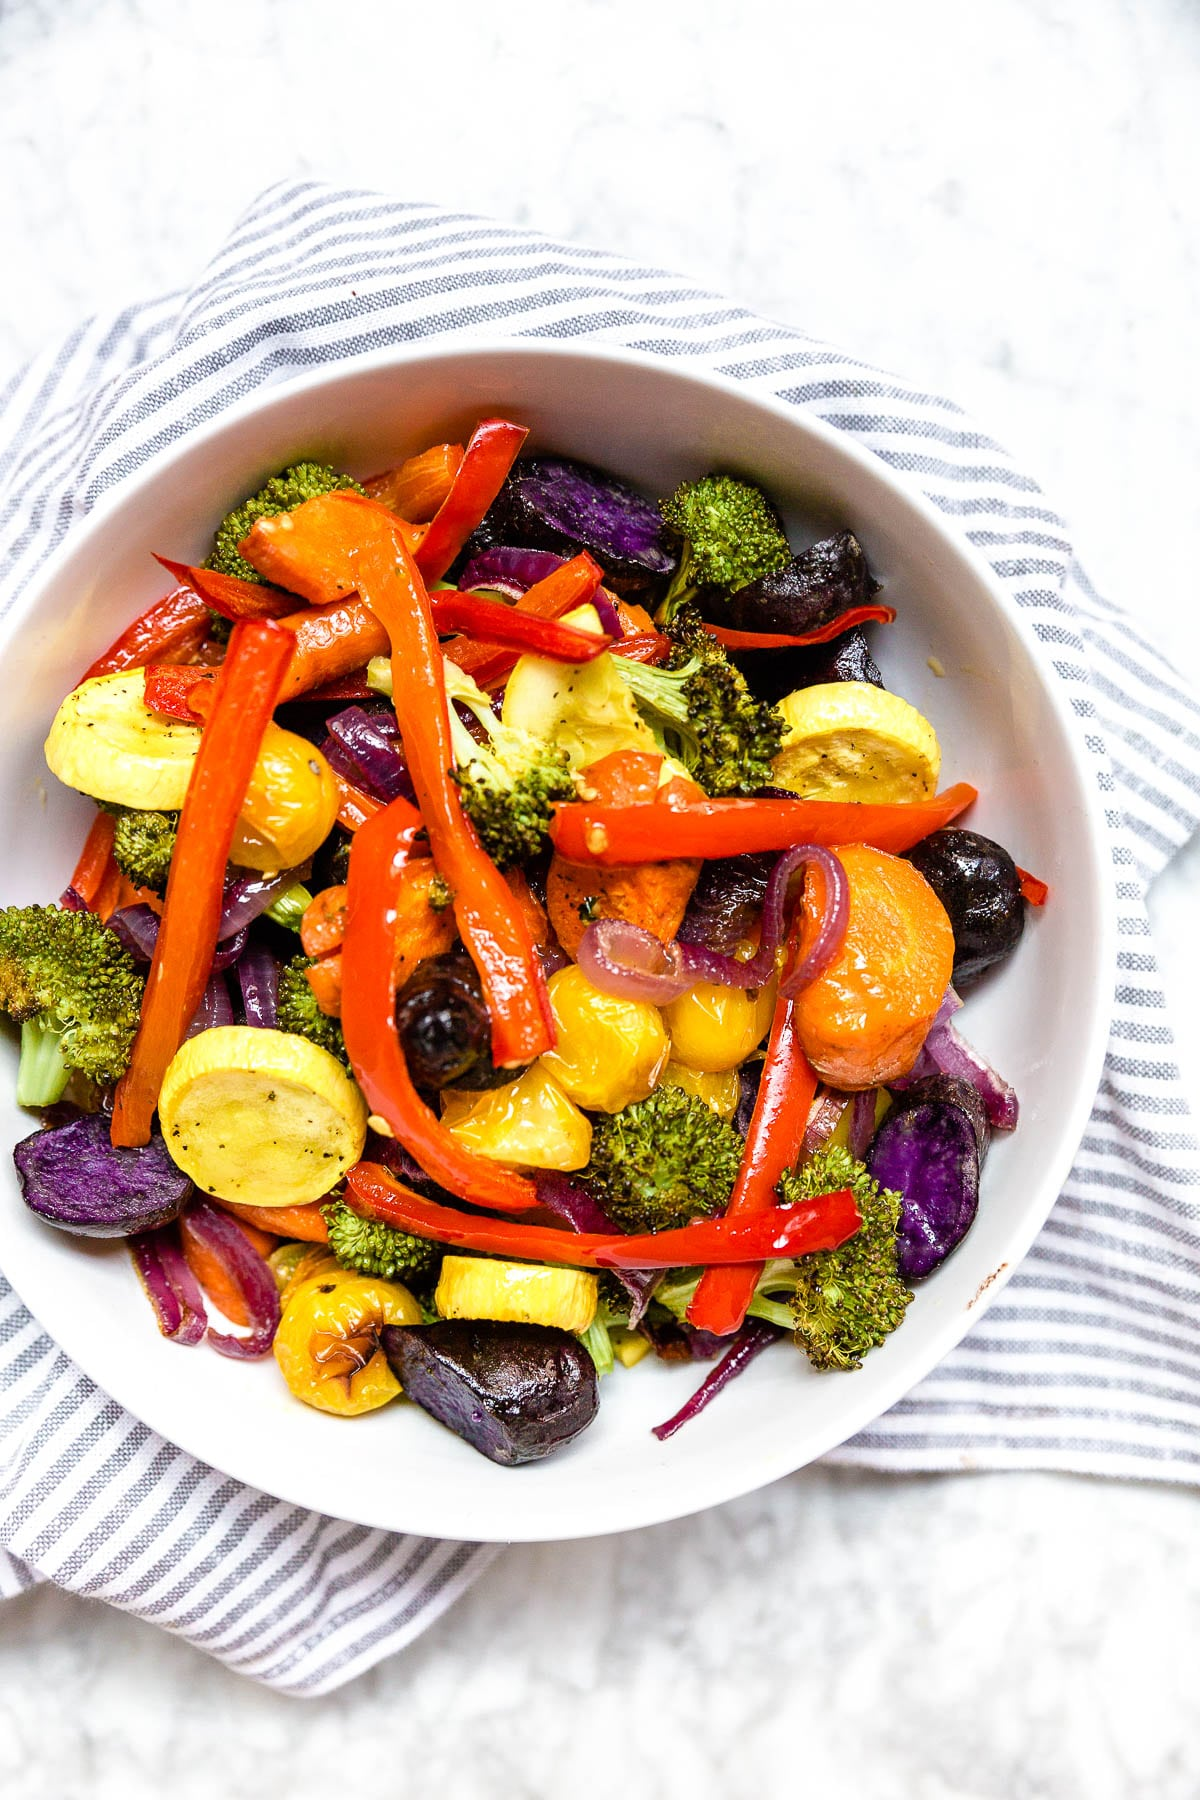 A bowl of mixed roasted vegetables in a rainbow of colors on a white table.